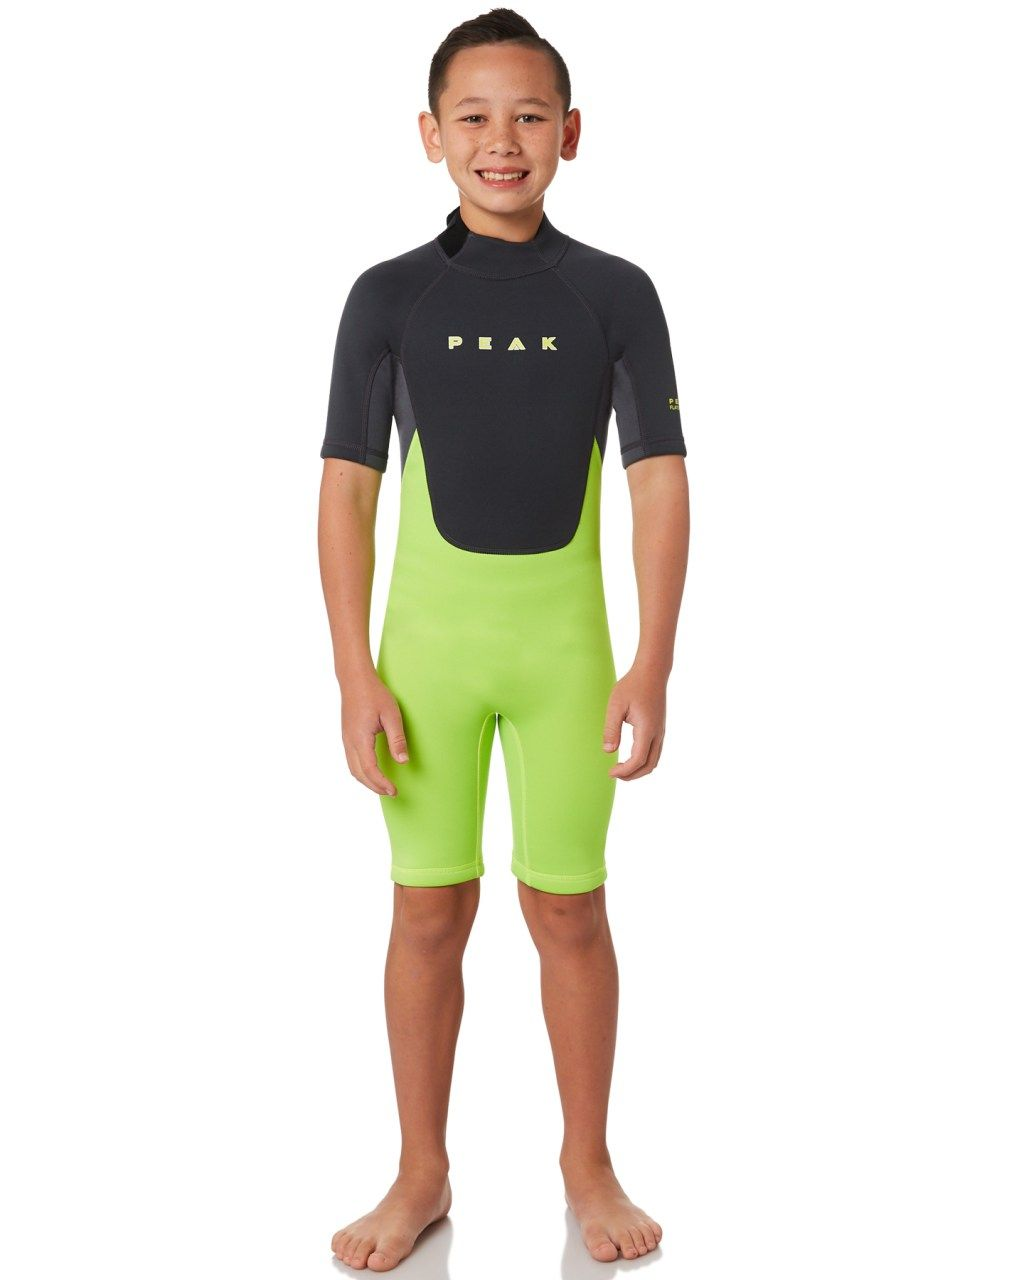 Peak Boys Energy Ss Spring Suit Lime Lime Surfing Wetsuits Size 12 ... 8063f40fa